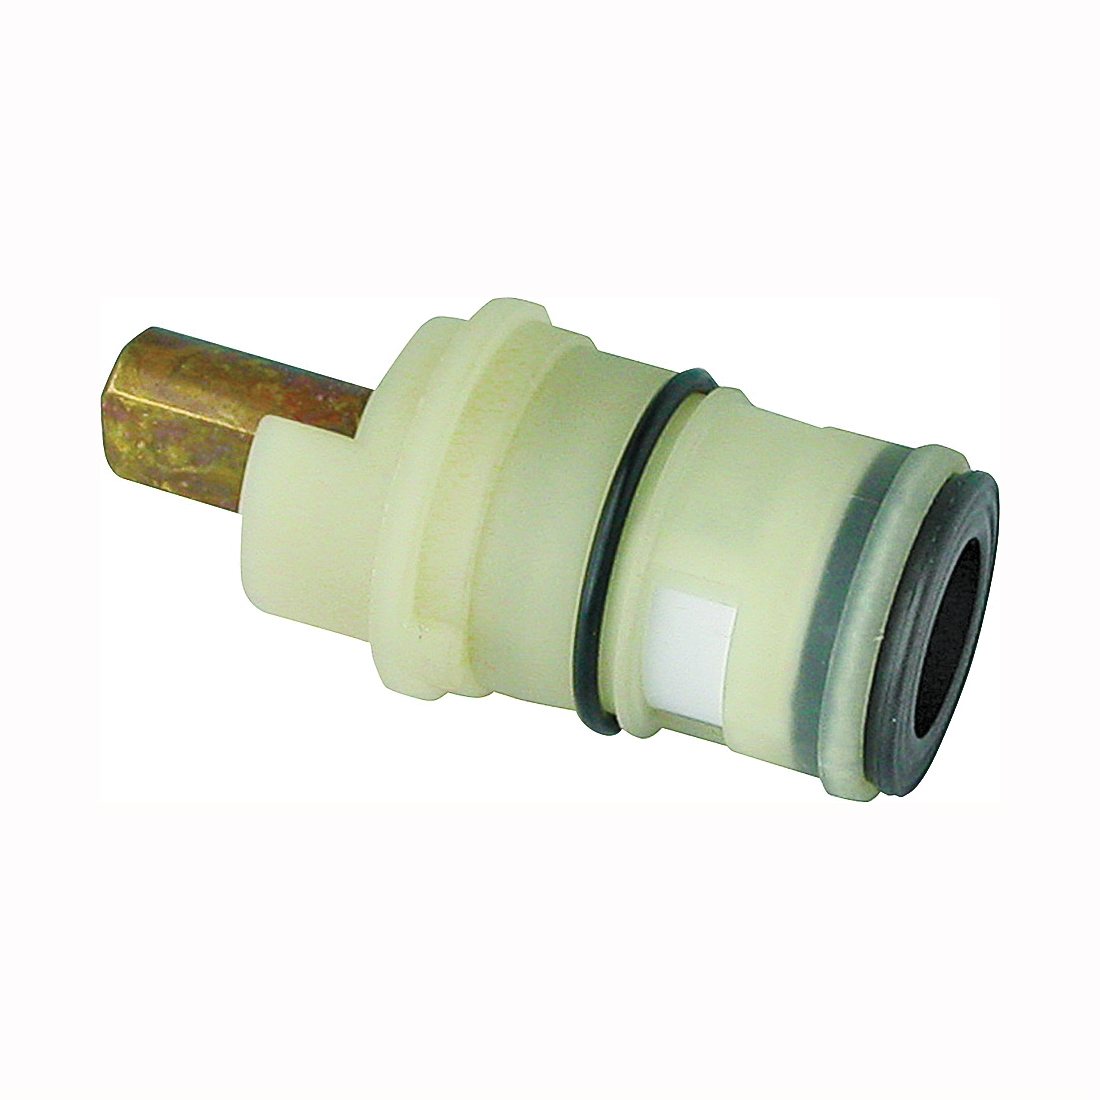 Picture of Boston Harbor A507104N-OBF1 Faucet Cartridge, Brass/Ceramic/Plastic, For: Mintcraft Stem Cold